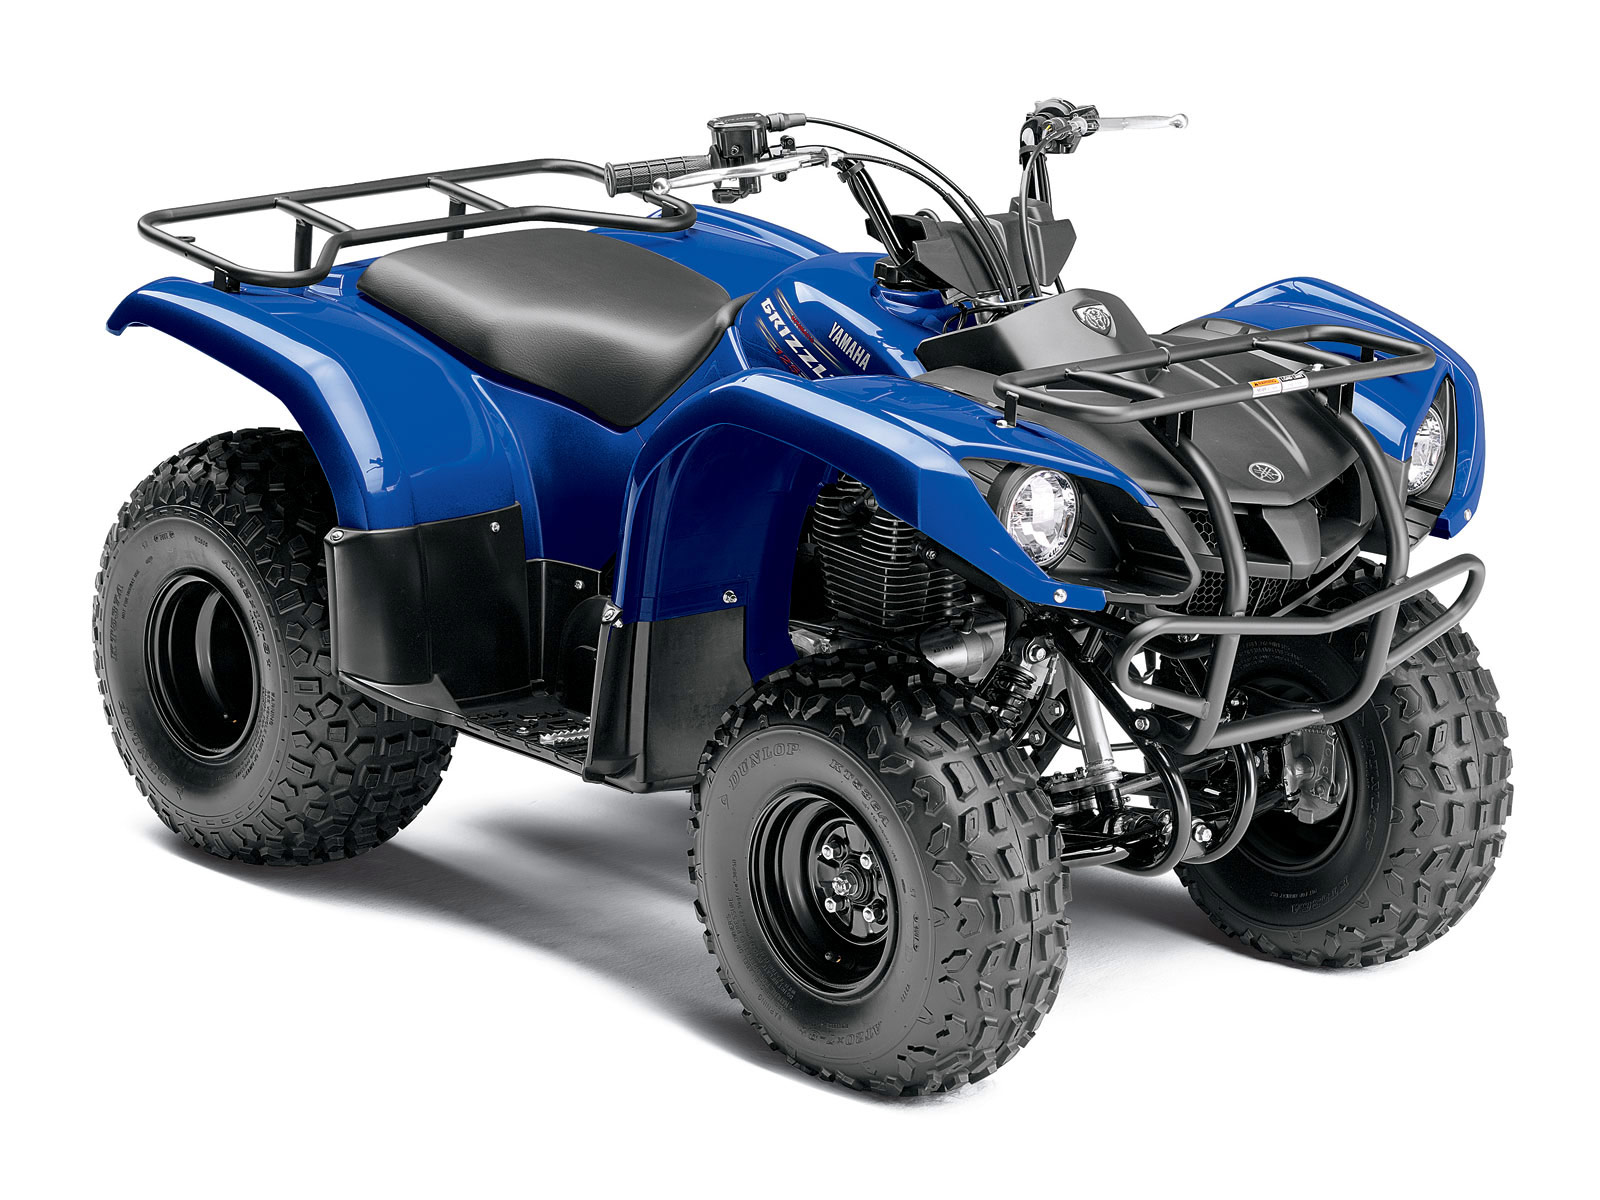 2011 yamaha grizzly 125 atv pictures super moto and sexy. Black Bedroom Furniture Sets. Home Design Ideas